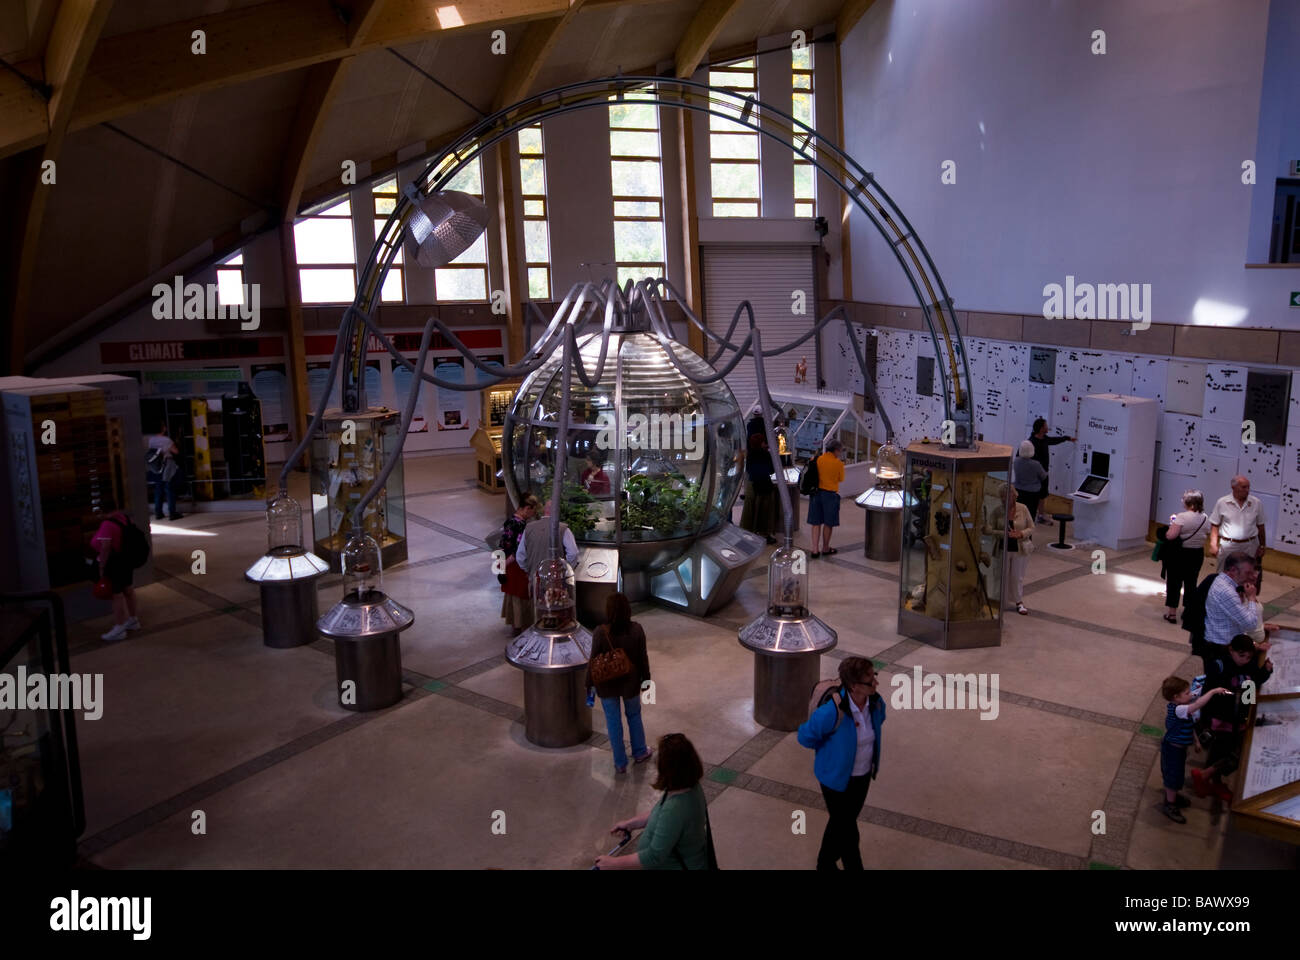 Exhibition Hall in Core Building at Eden Project Stock Photo